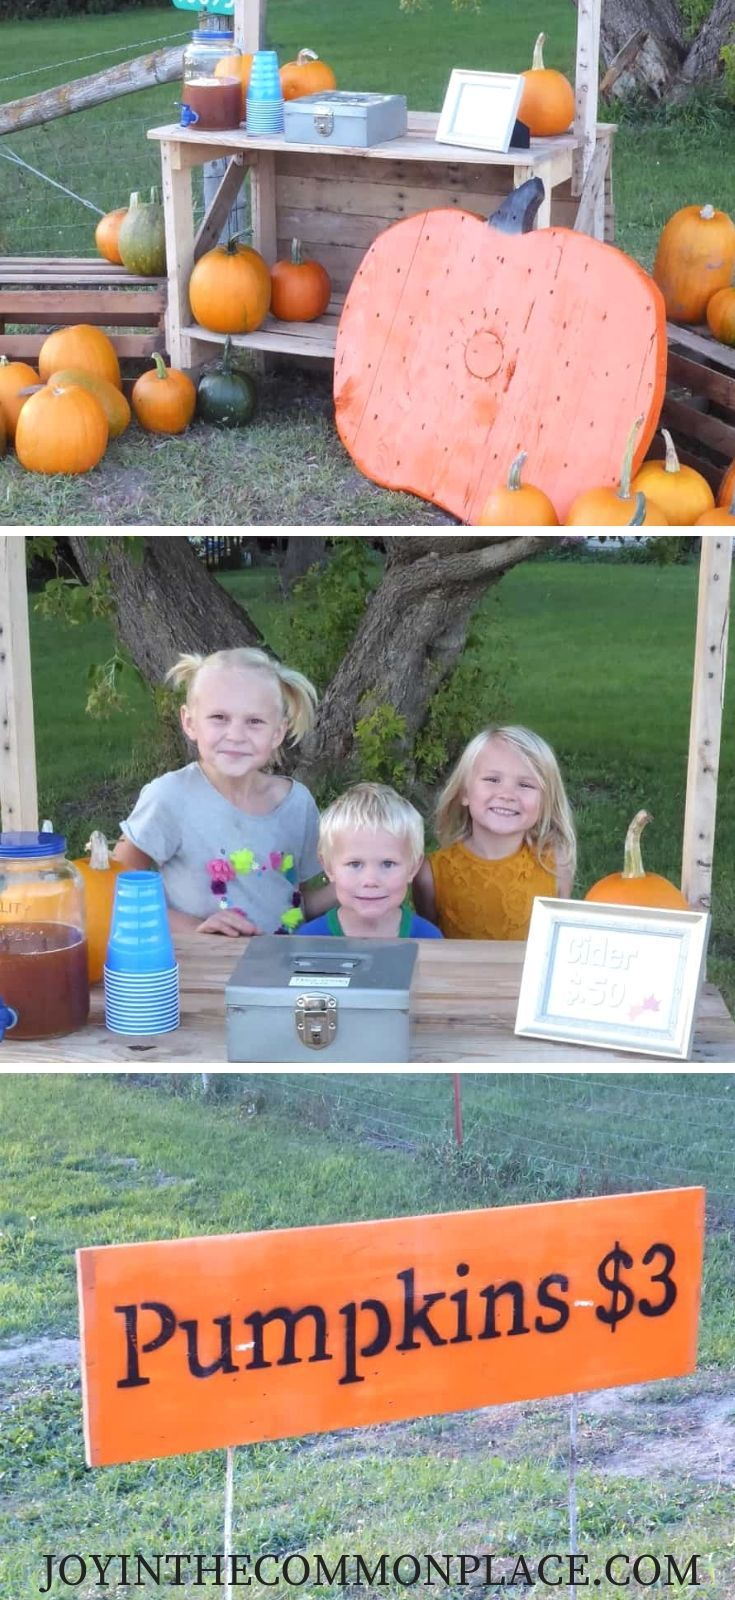 Set up a Pumpkin Stand and Sell Pumpkins by the Roadside